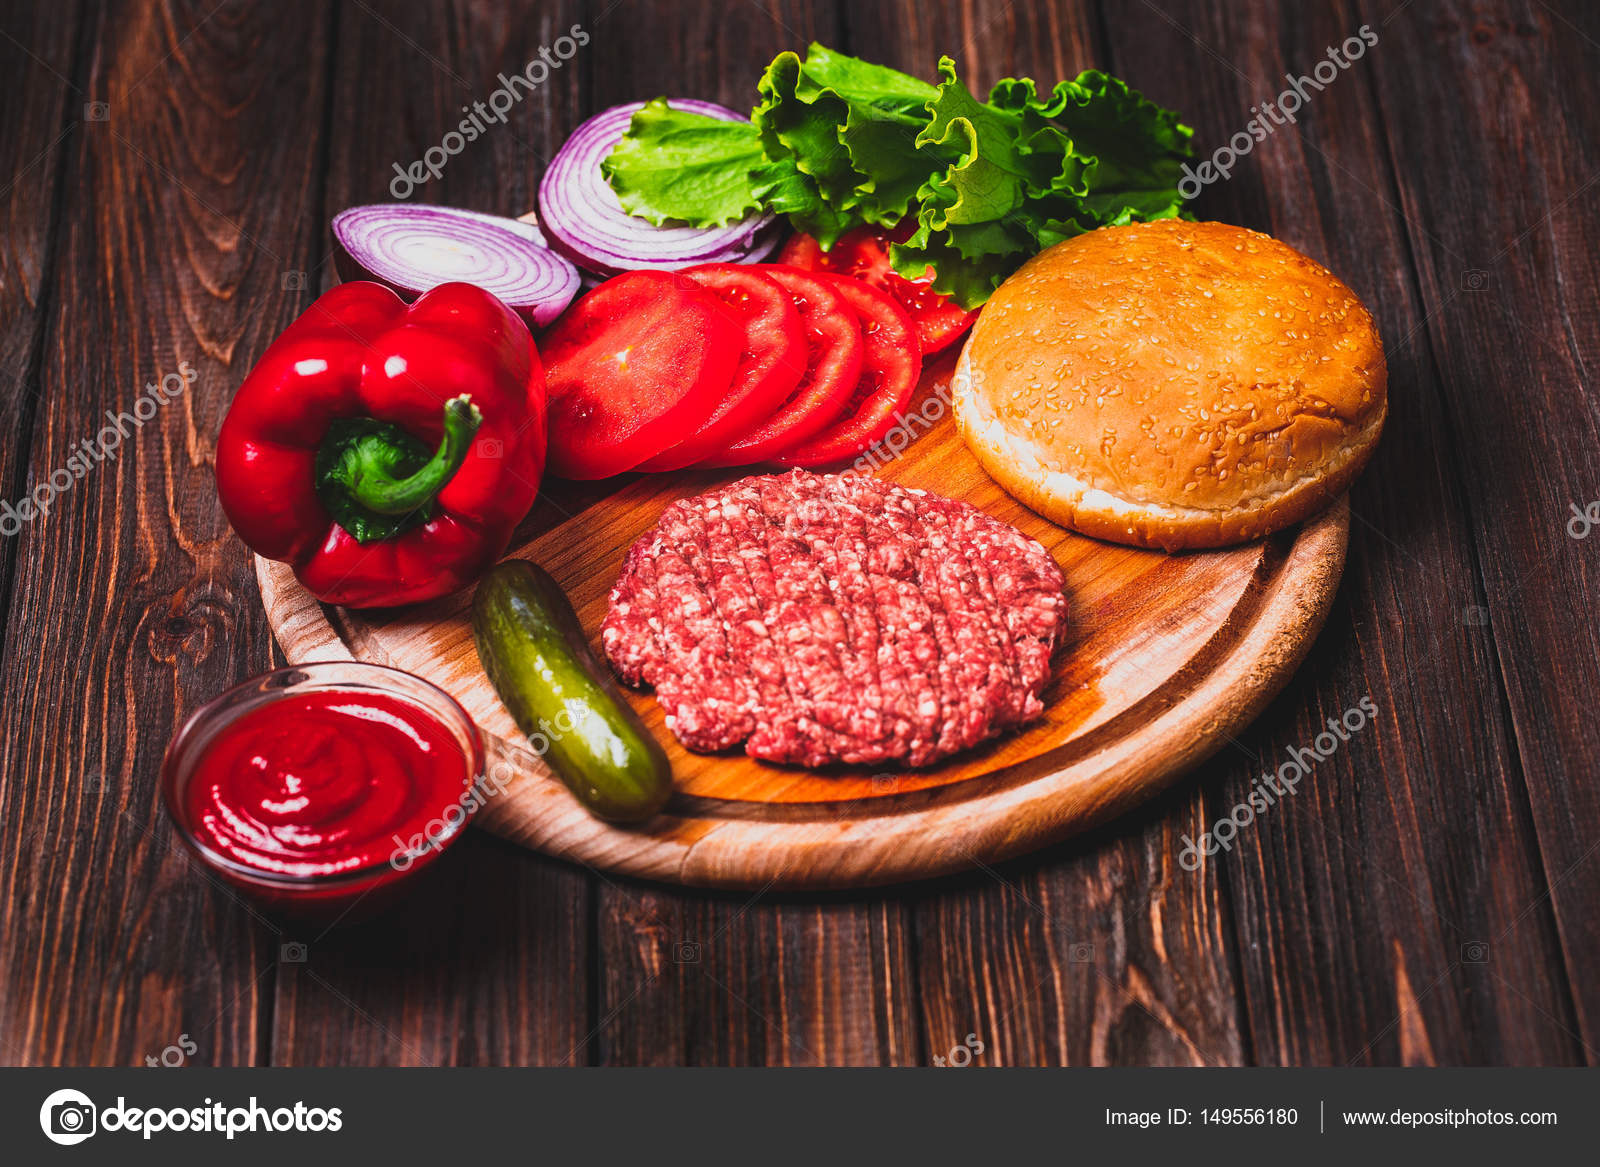 rohen boden rindfleisch fleisch burger steak schnitzel mit gew rzen k se tomaten salat und. Black Bedroom Furniture Sets. Home Design Ideas